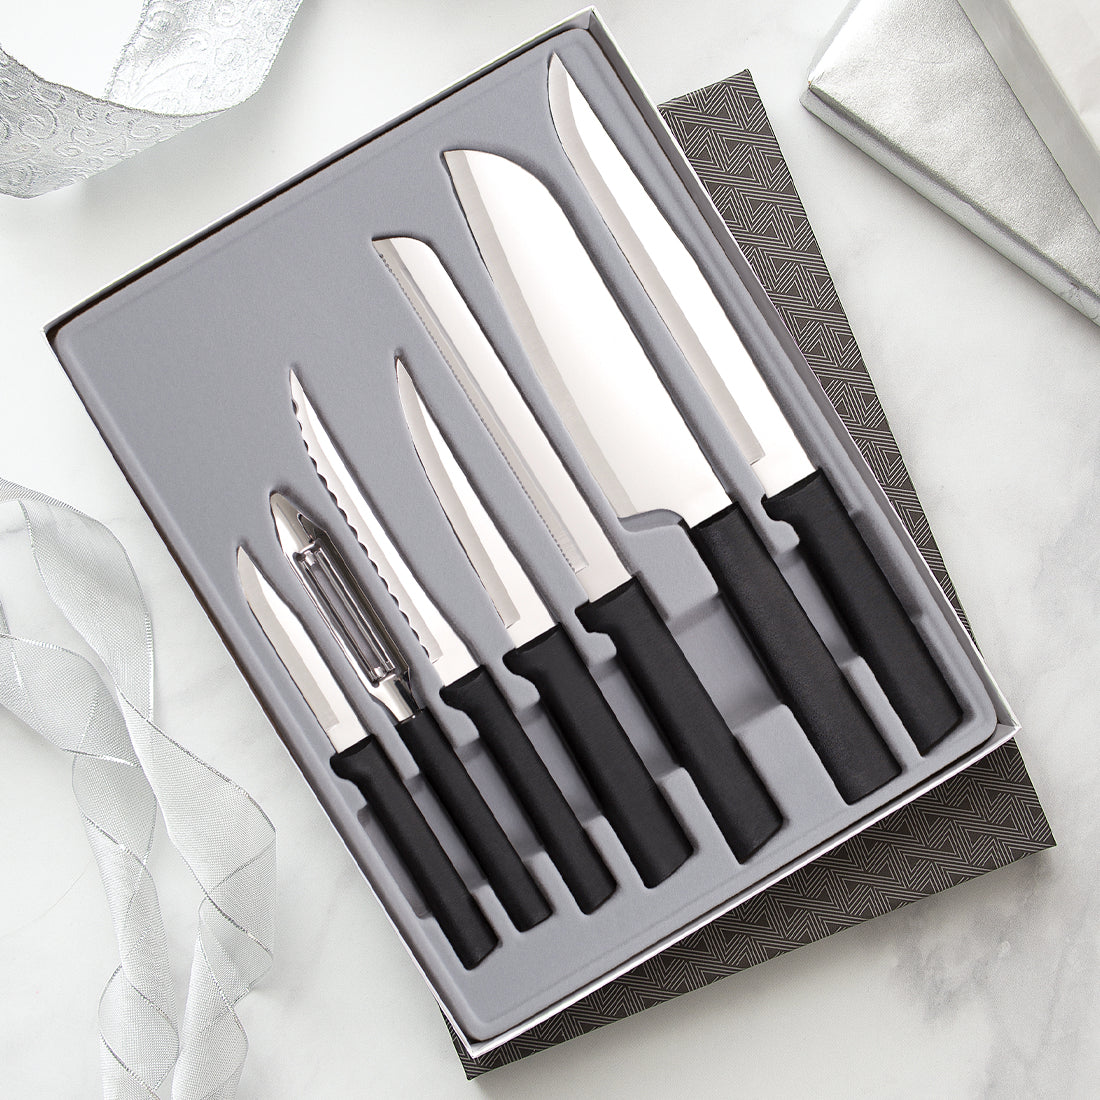 Details about  /RADA CUTLERY S13 Carving Gift Set FREE SHIPING